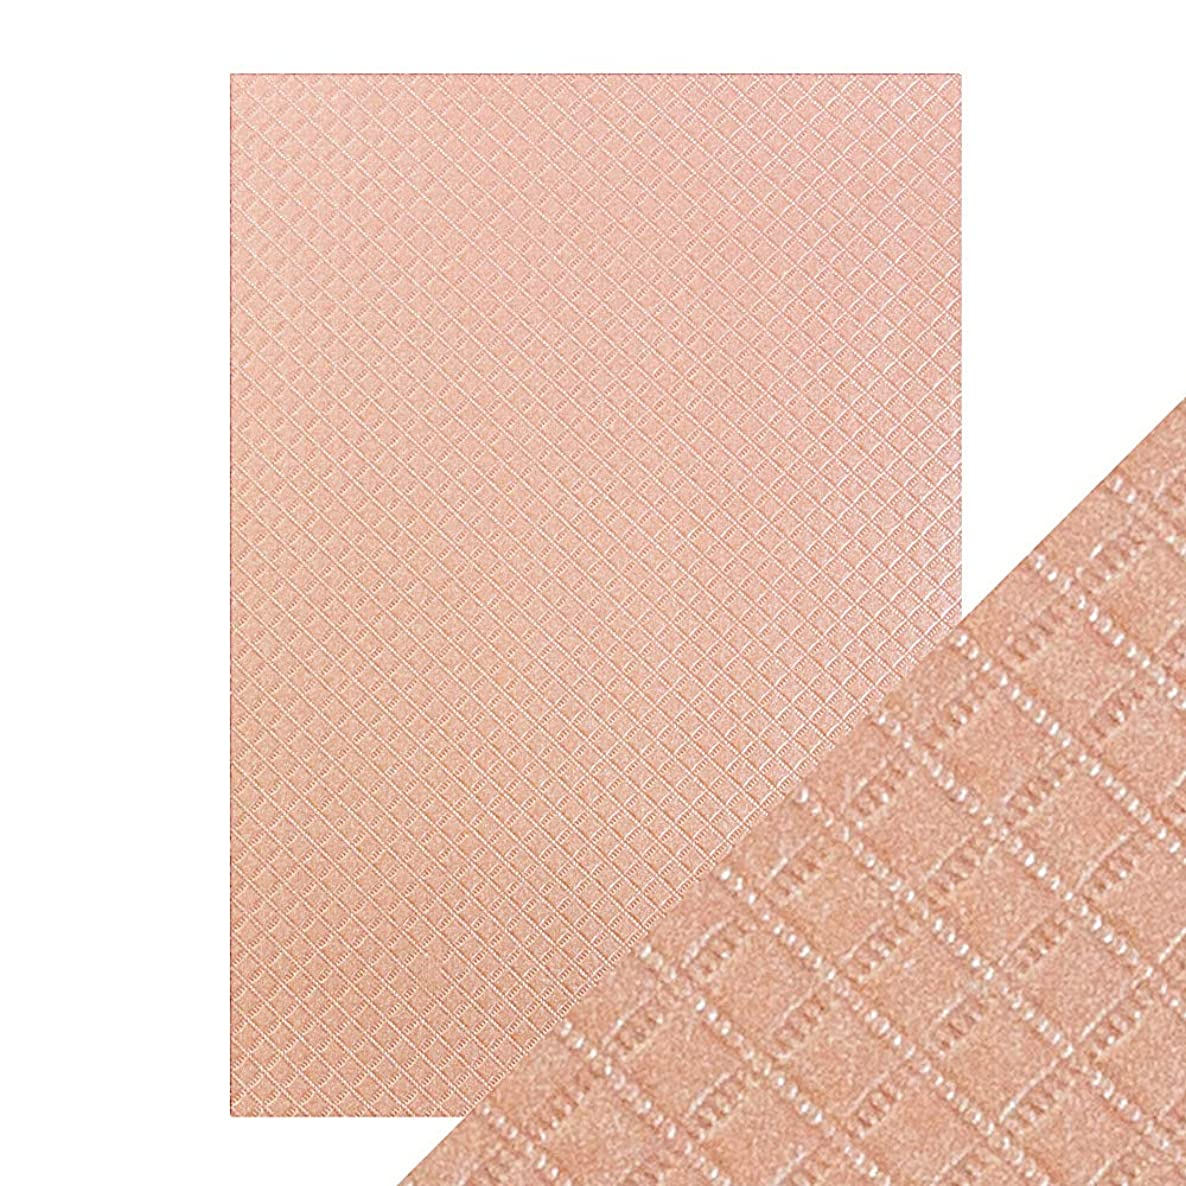 Tonic Studios Craft Perfect A4 Luxury Embossed Card, Cardstock, Salmon